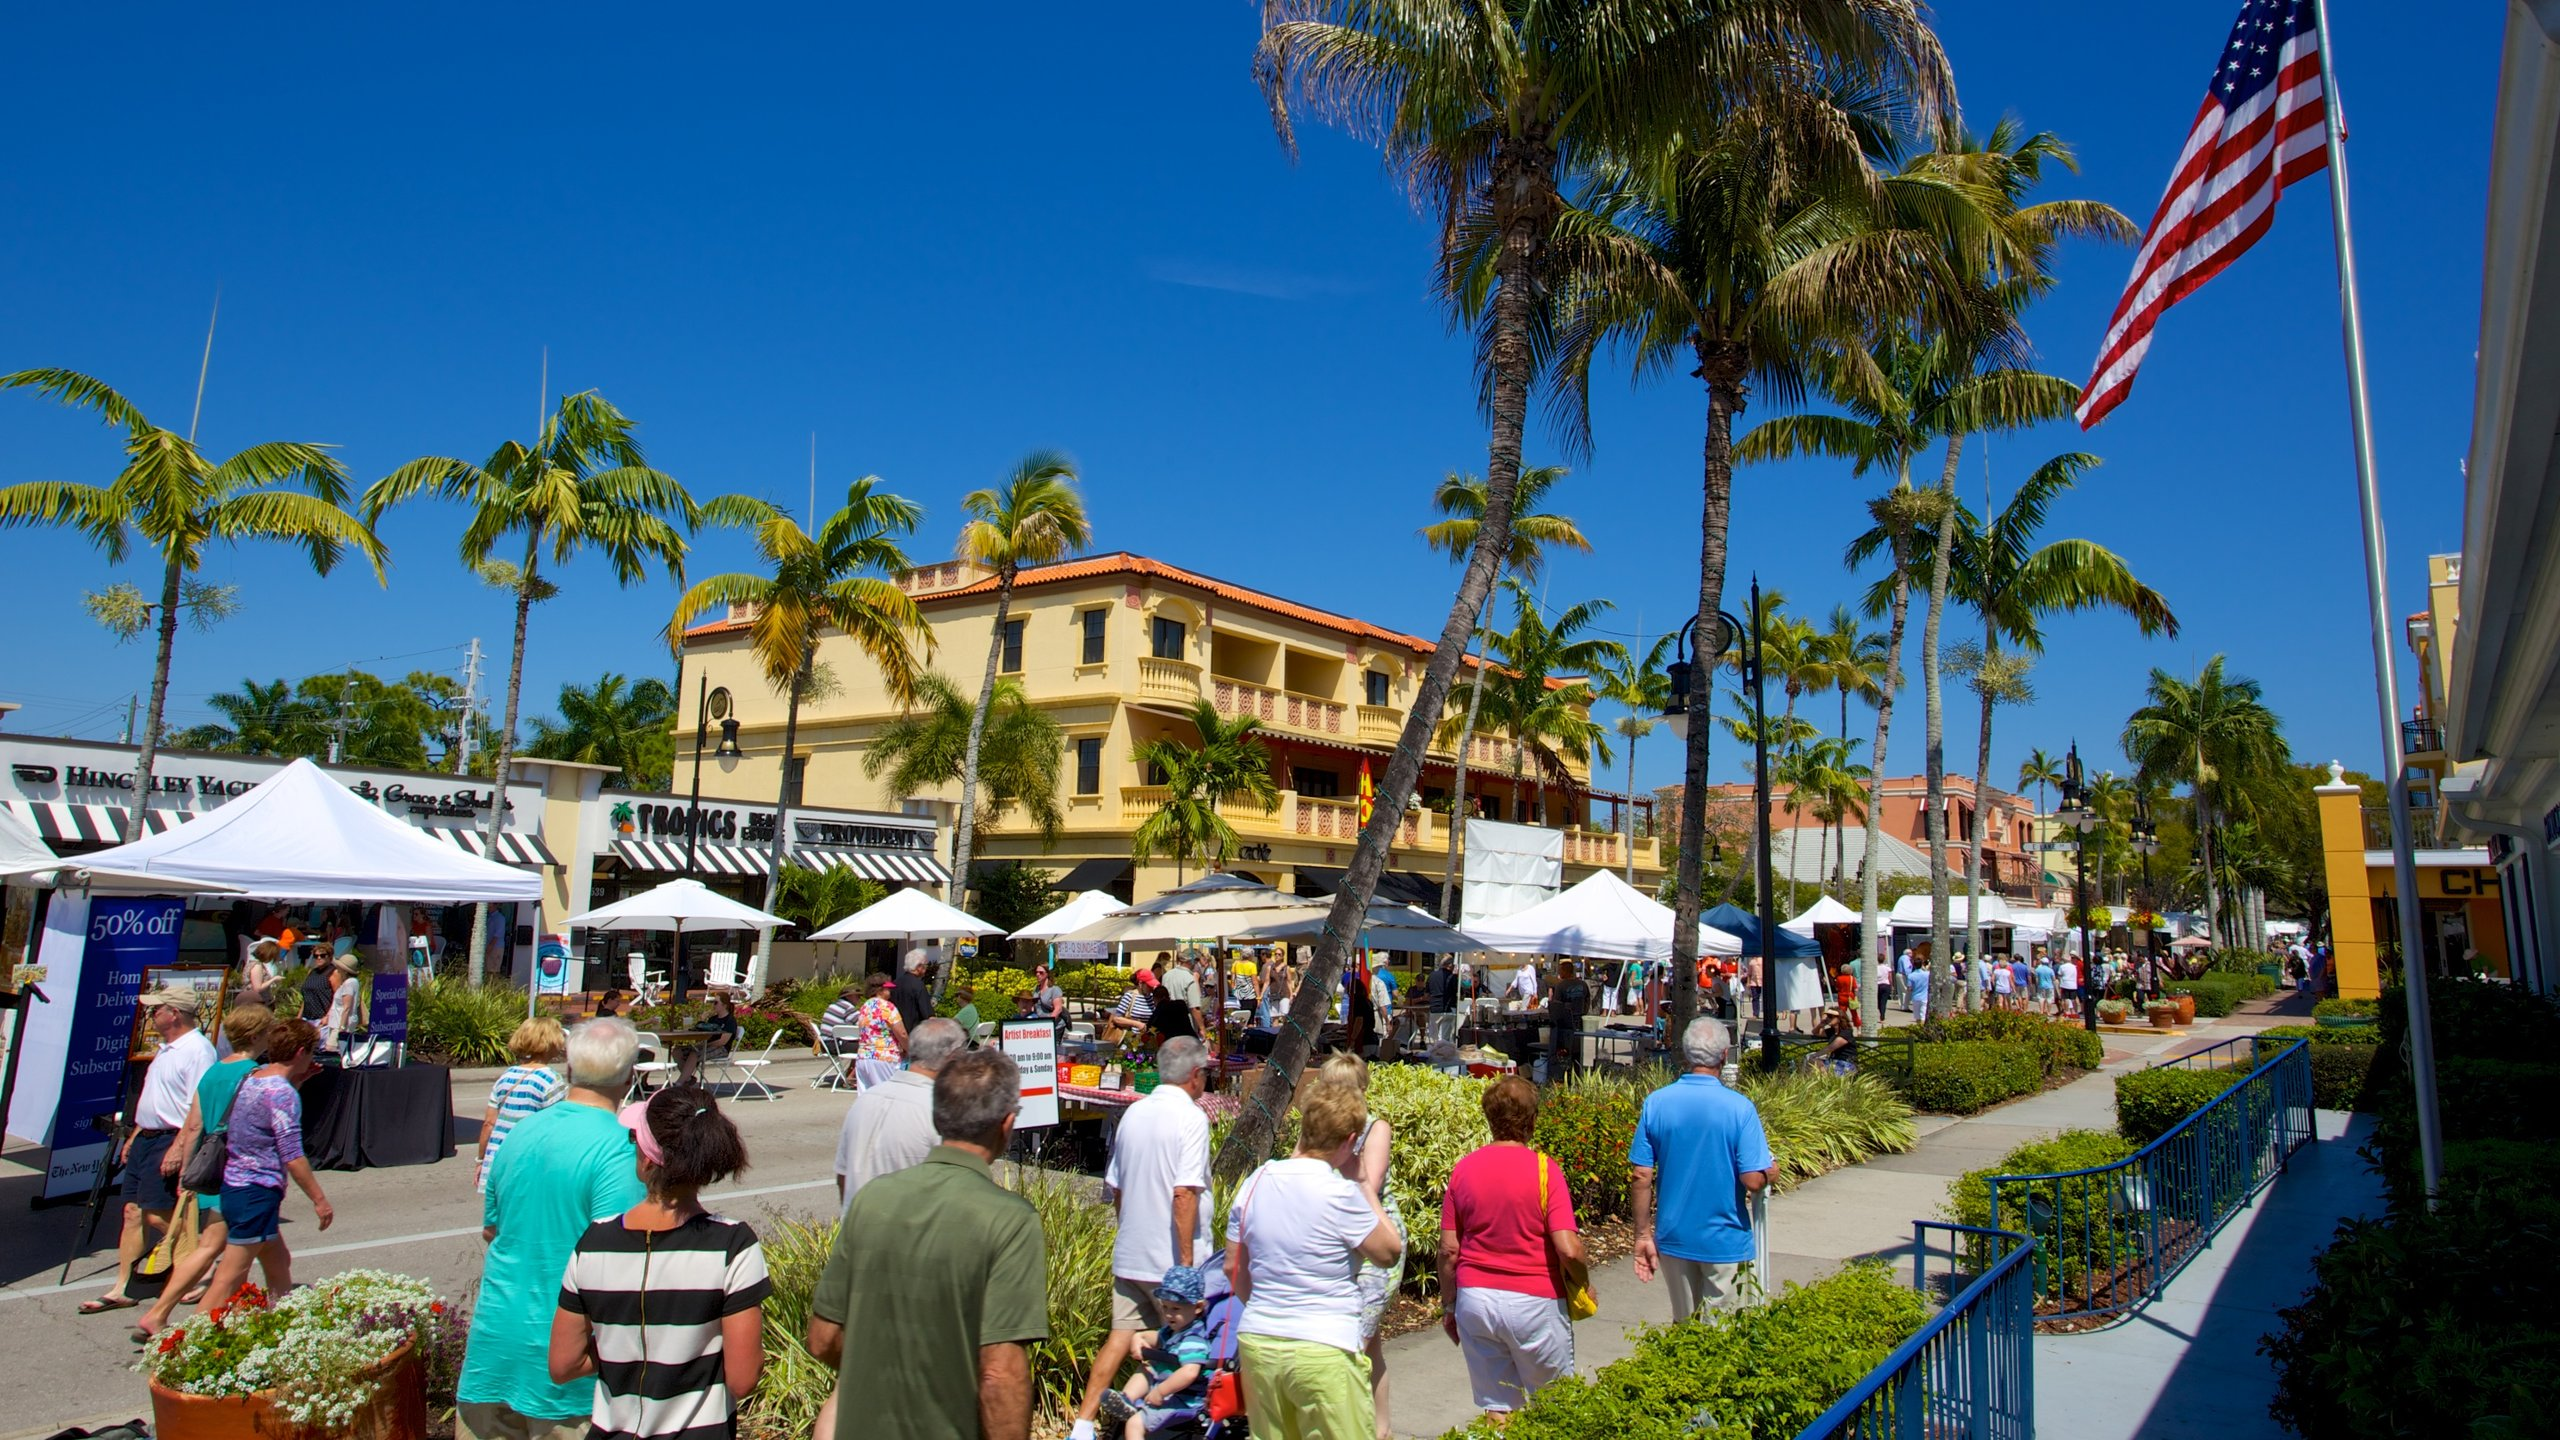 Fifth Avenue South, Naples, Florida, United States of America